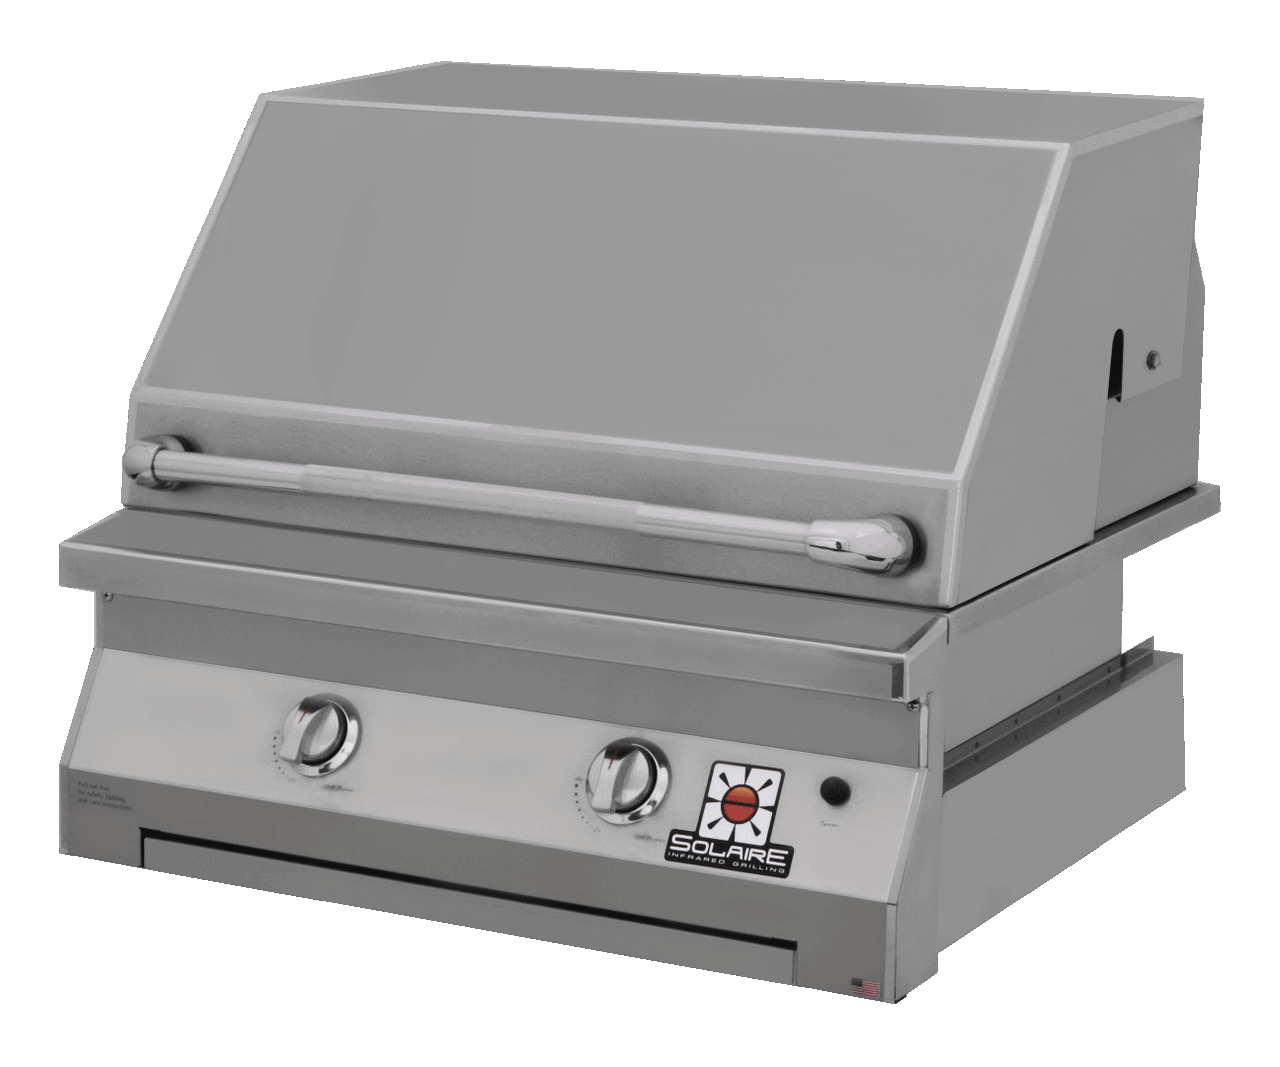 Solaire 30 Inch Grill, Built In, Front View, Hood Down, IRBQ